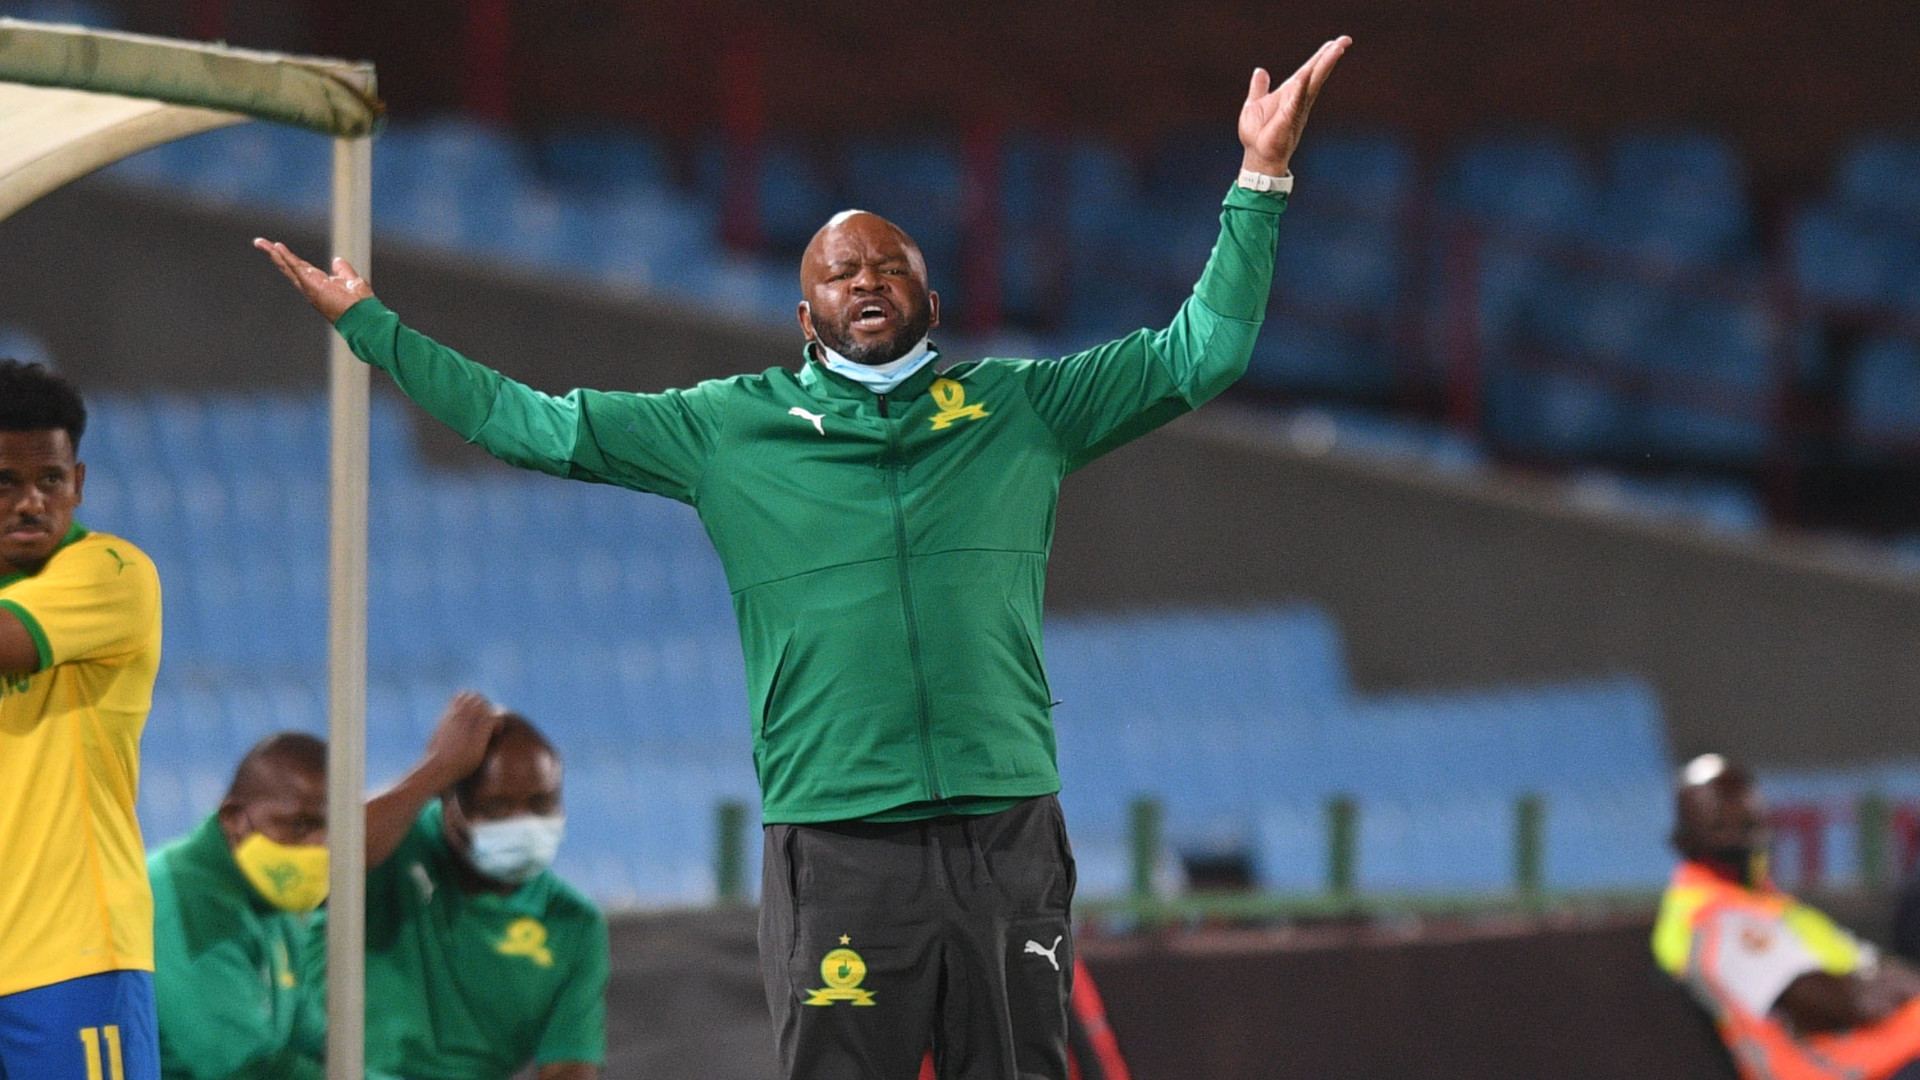 Mamelodi Sundowns coach Mngqithi: People were beginning to doubt our capacity | Goal.com